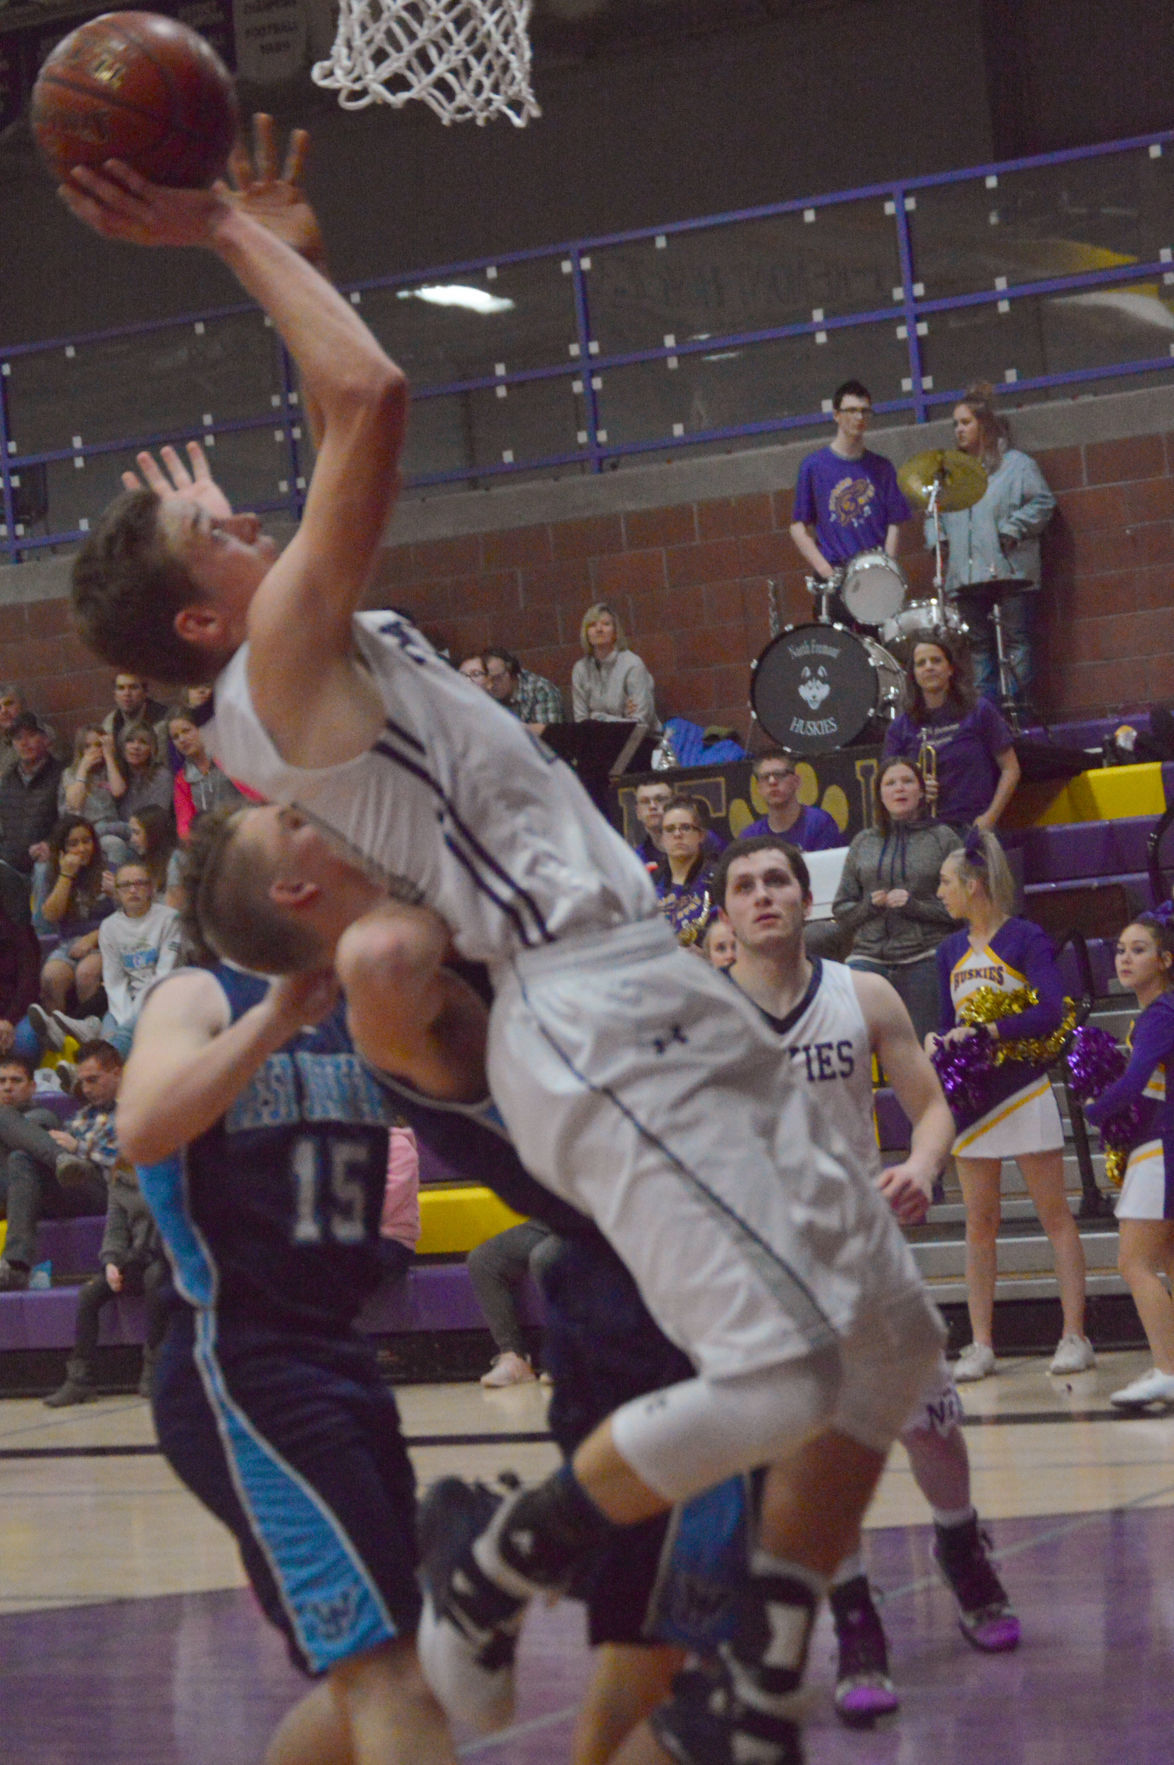 North Fremont's Garrett Hawkes leans back to get a shot at the bucket.